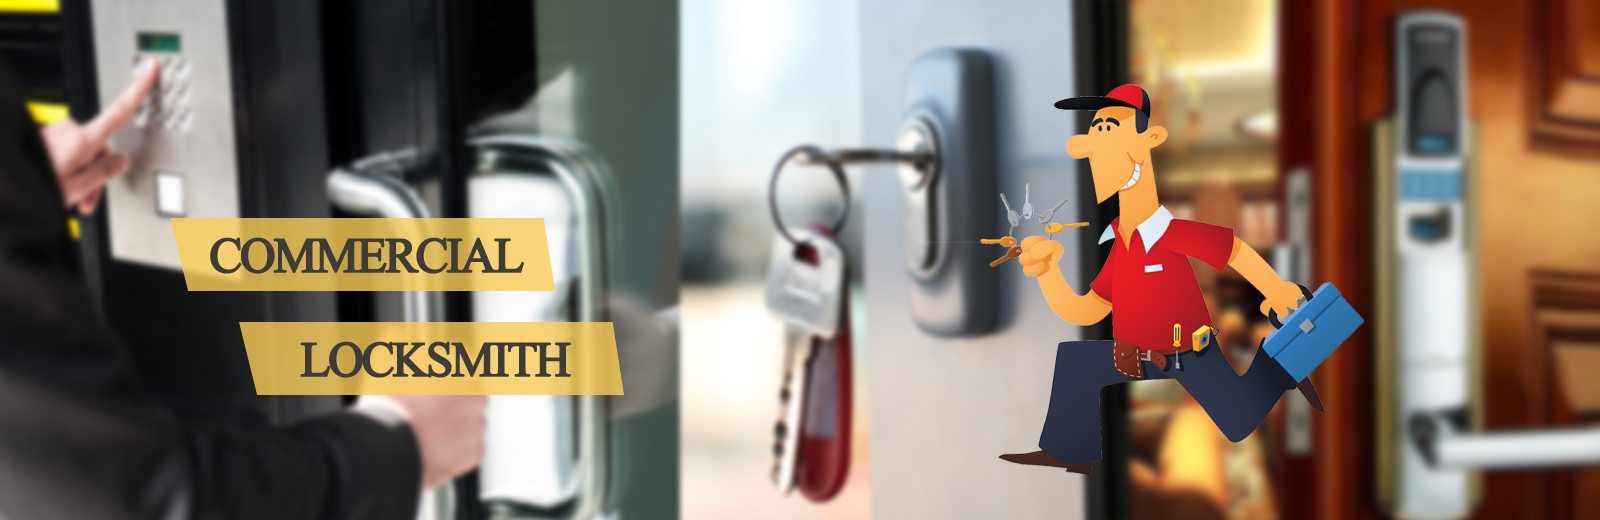 Philadelphia Commercial Locksmith